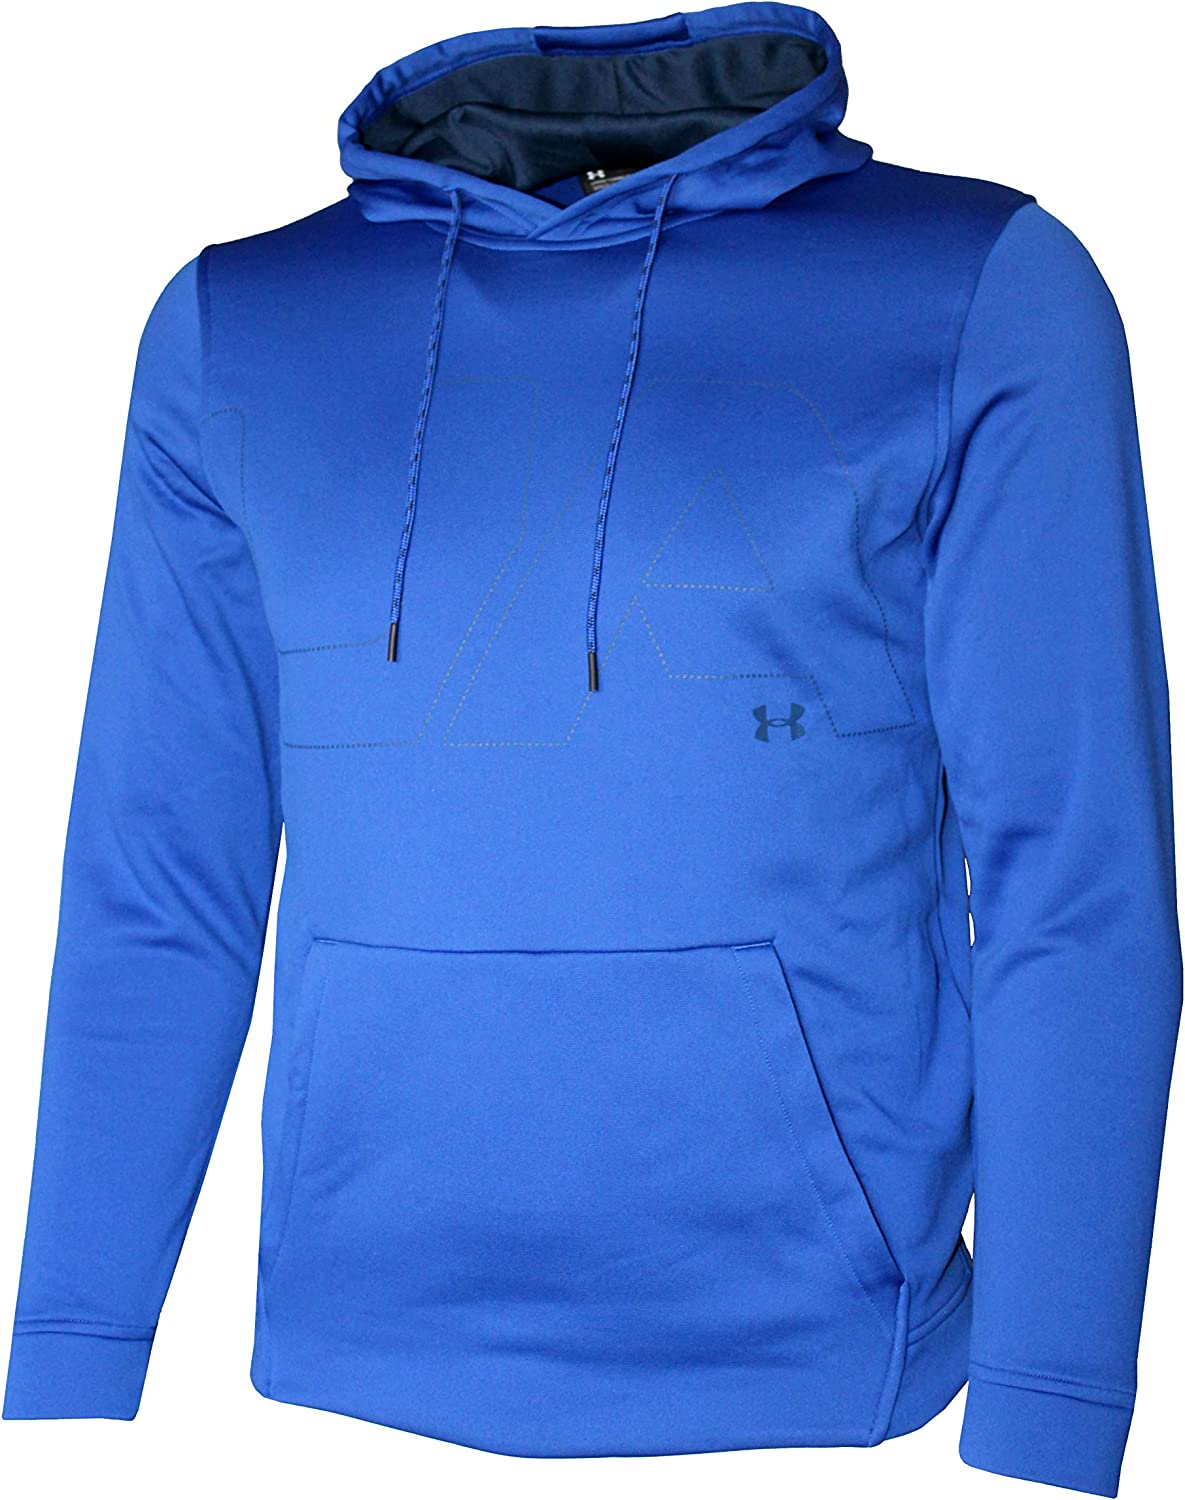 Under Armour Men's Performance Ranking TOP3 Hoodie Challenge the lowest price